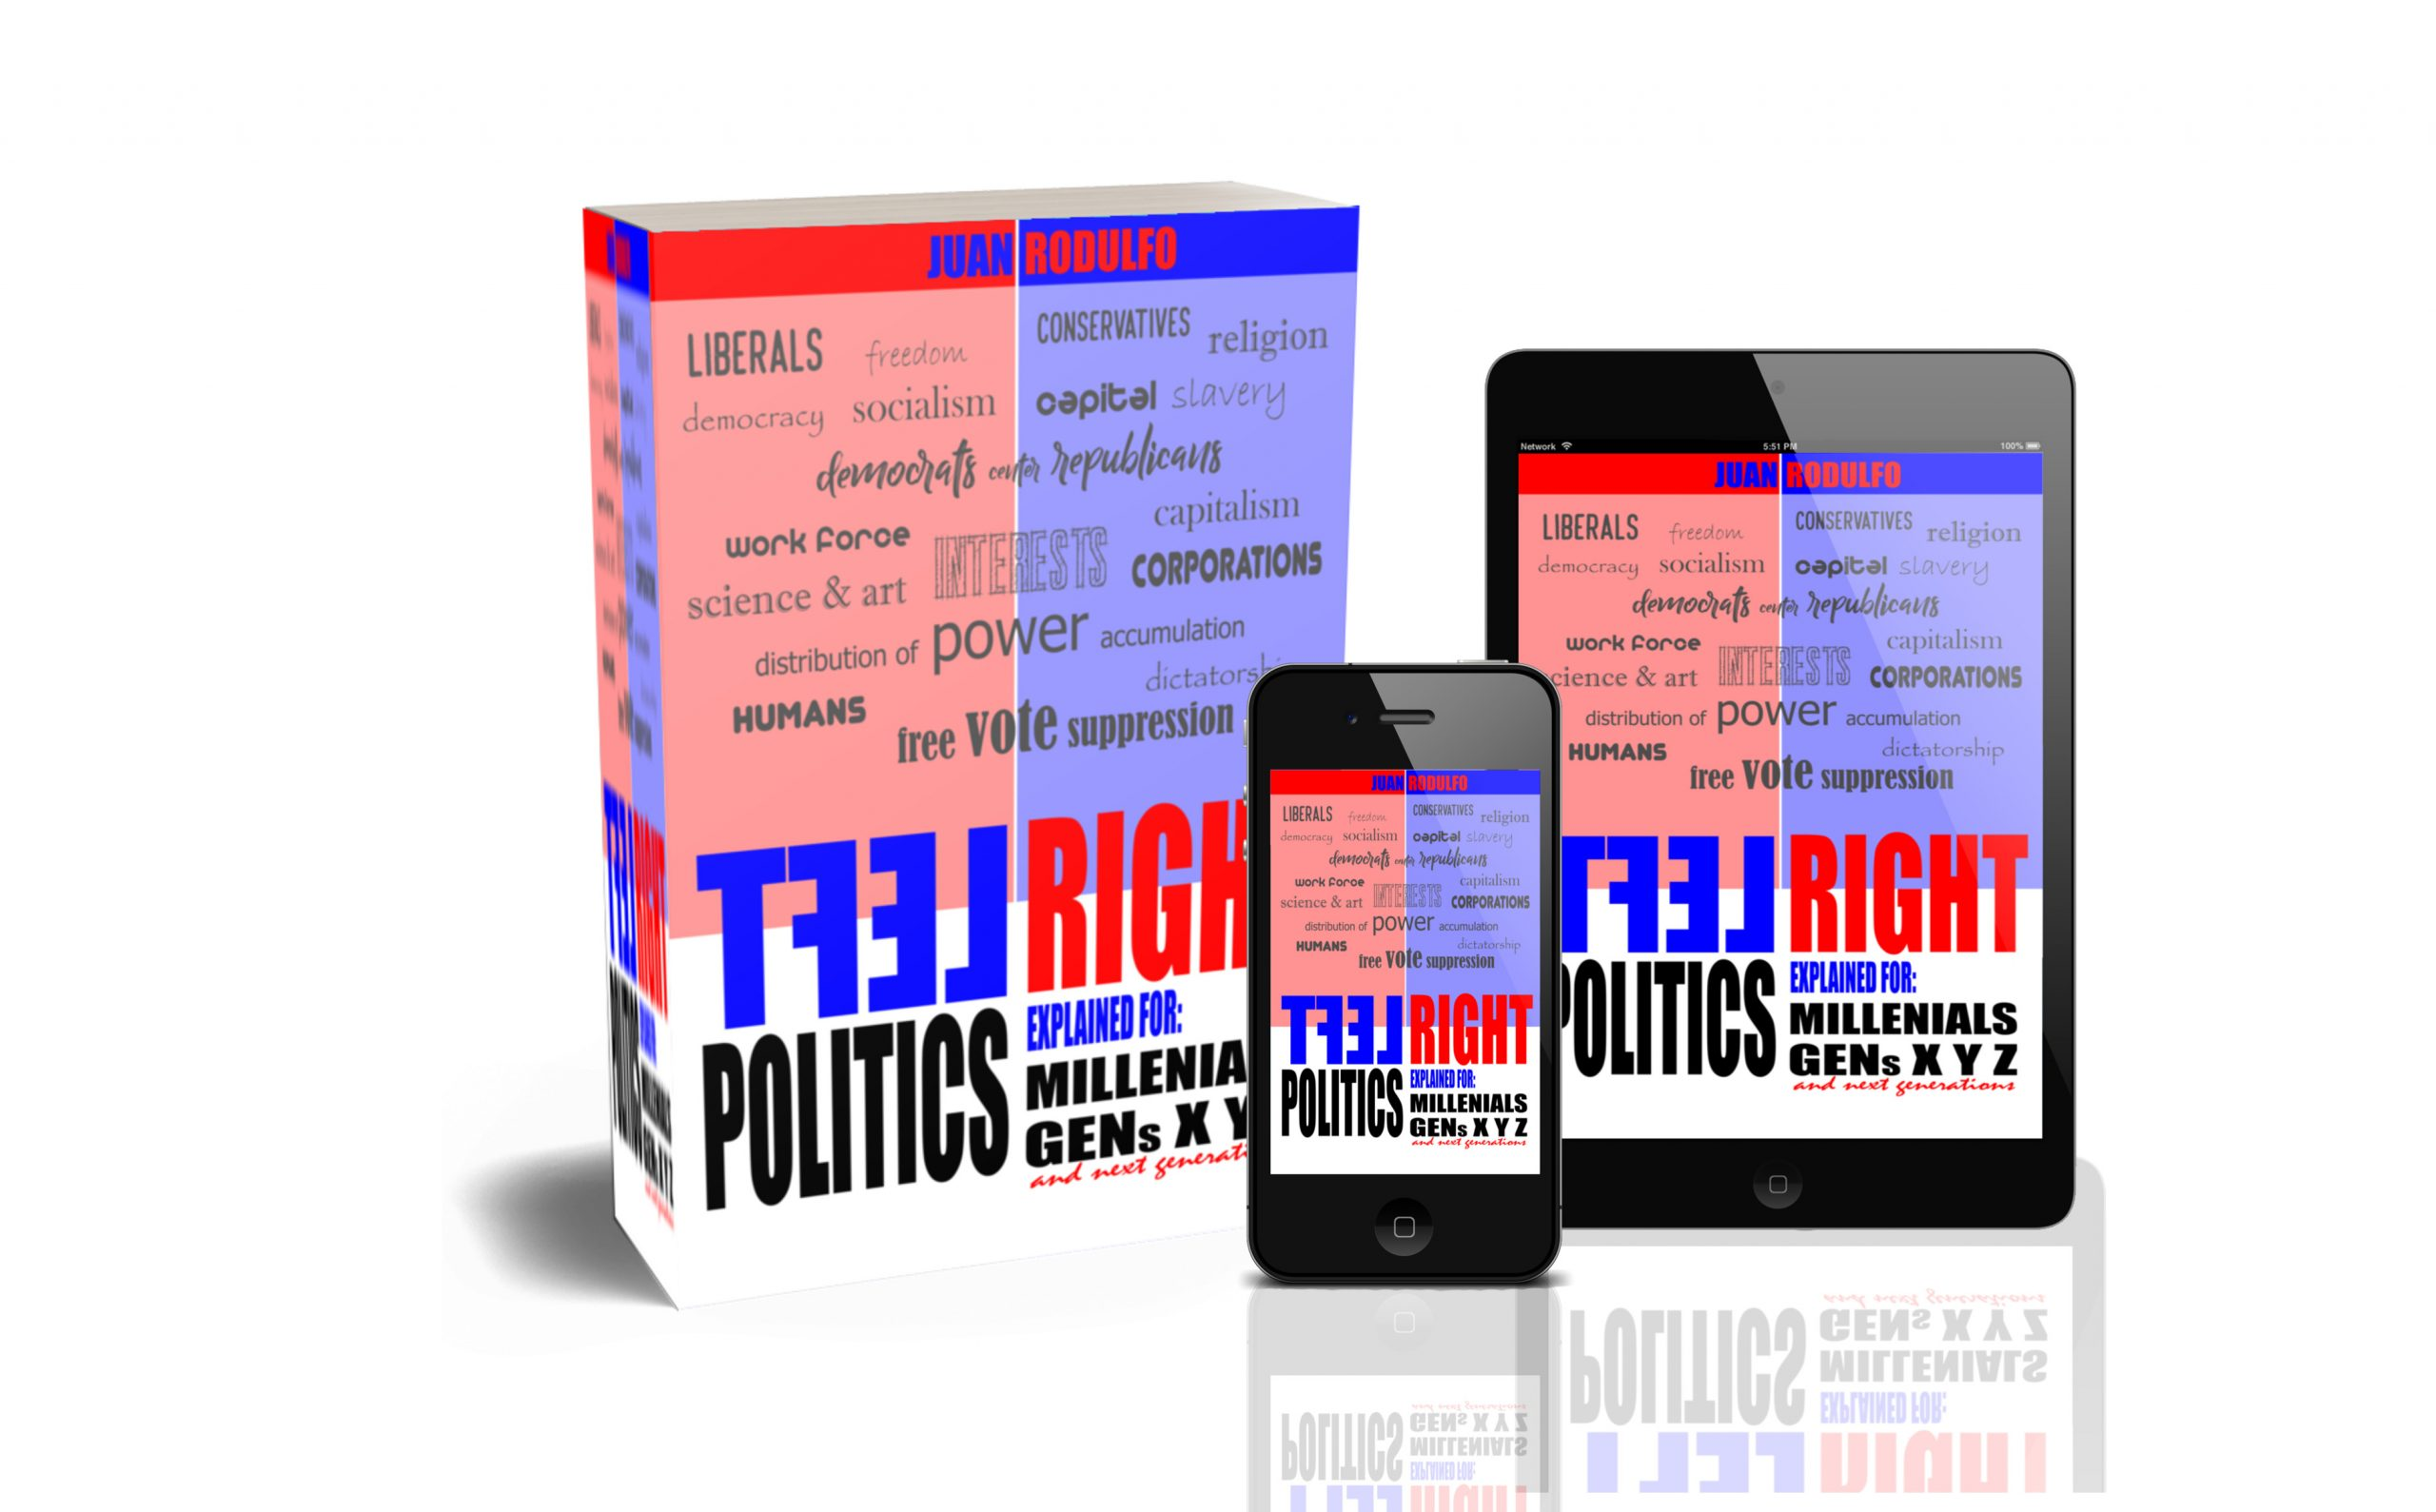 You are currently viewing New Book: Left Right, Politics Explained for Millennials, Gens X Y Z and next generations